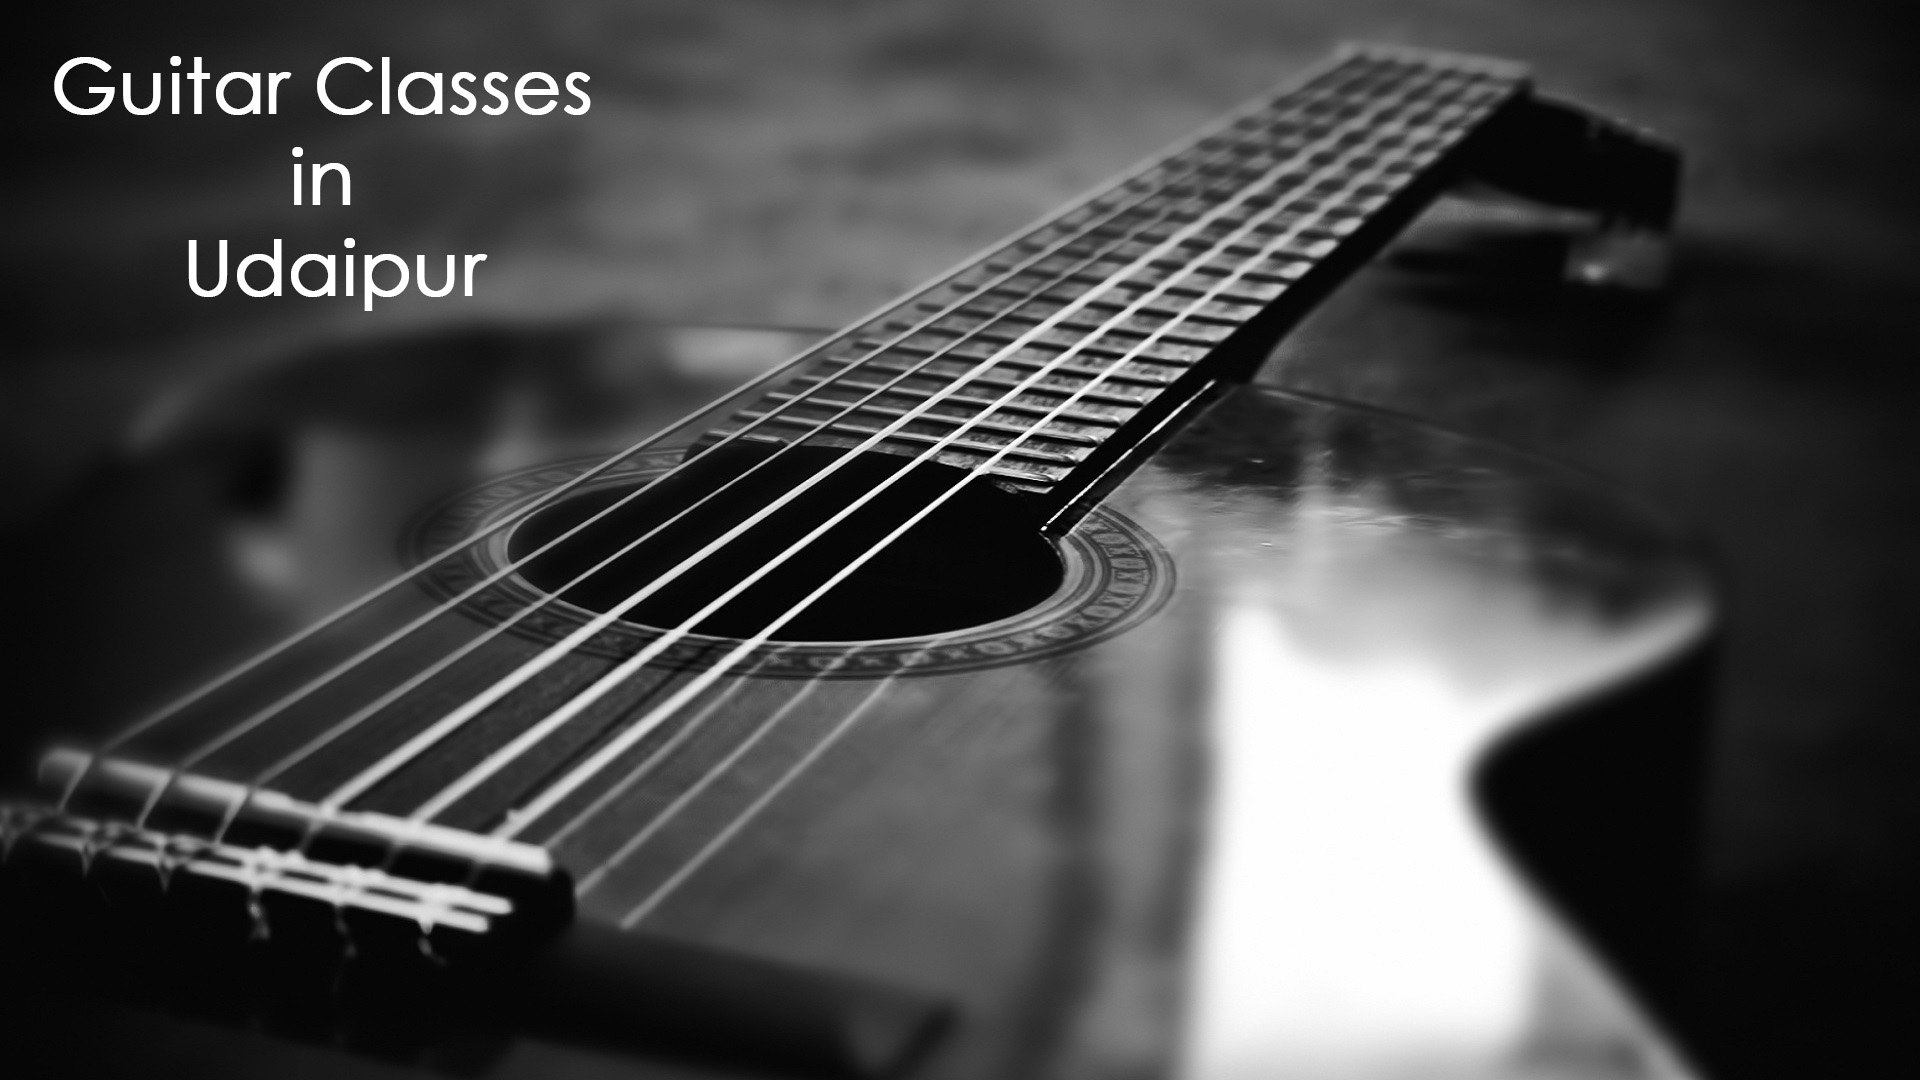 Guitar Classes in Udaipur